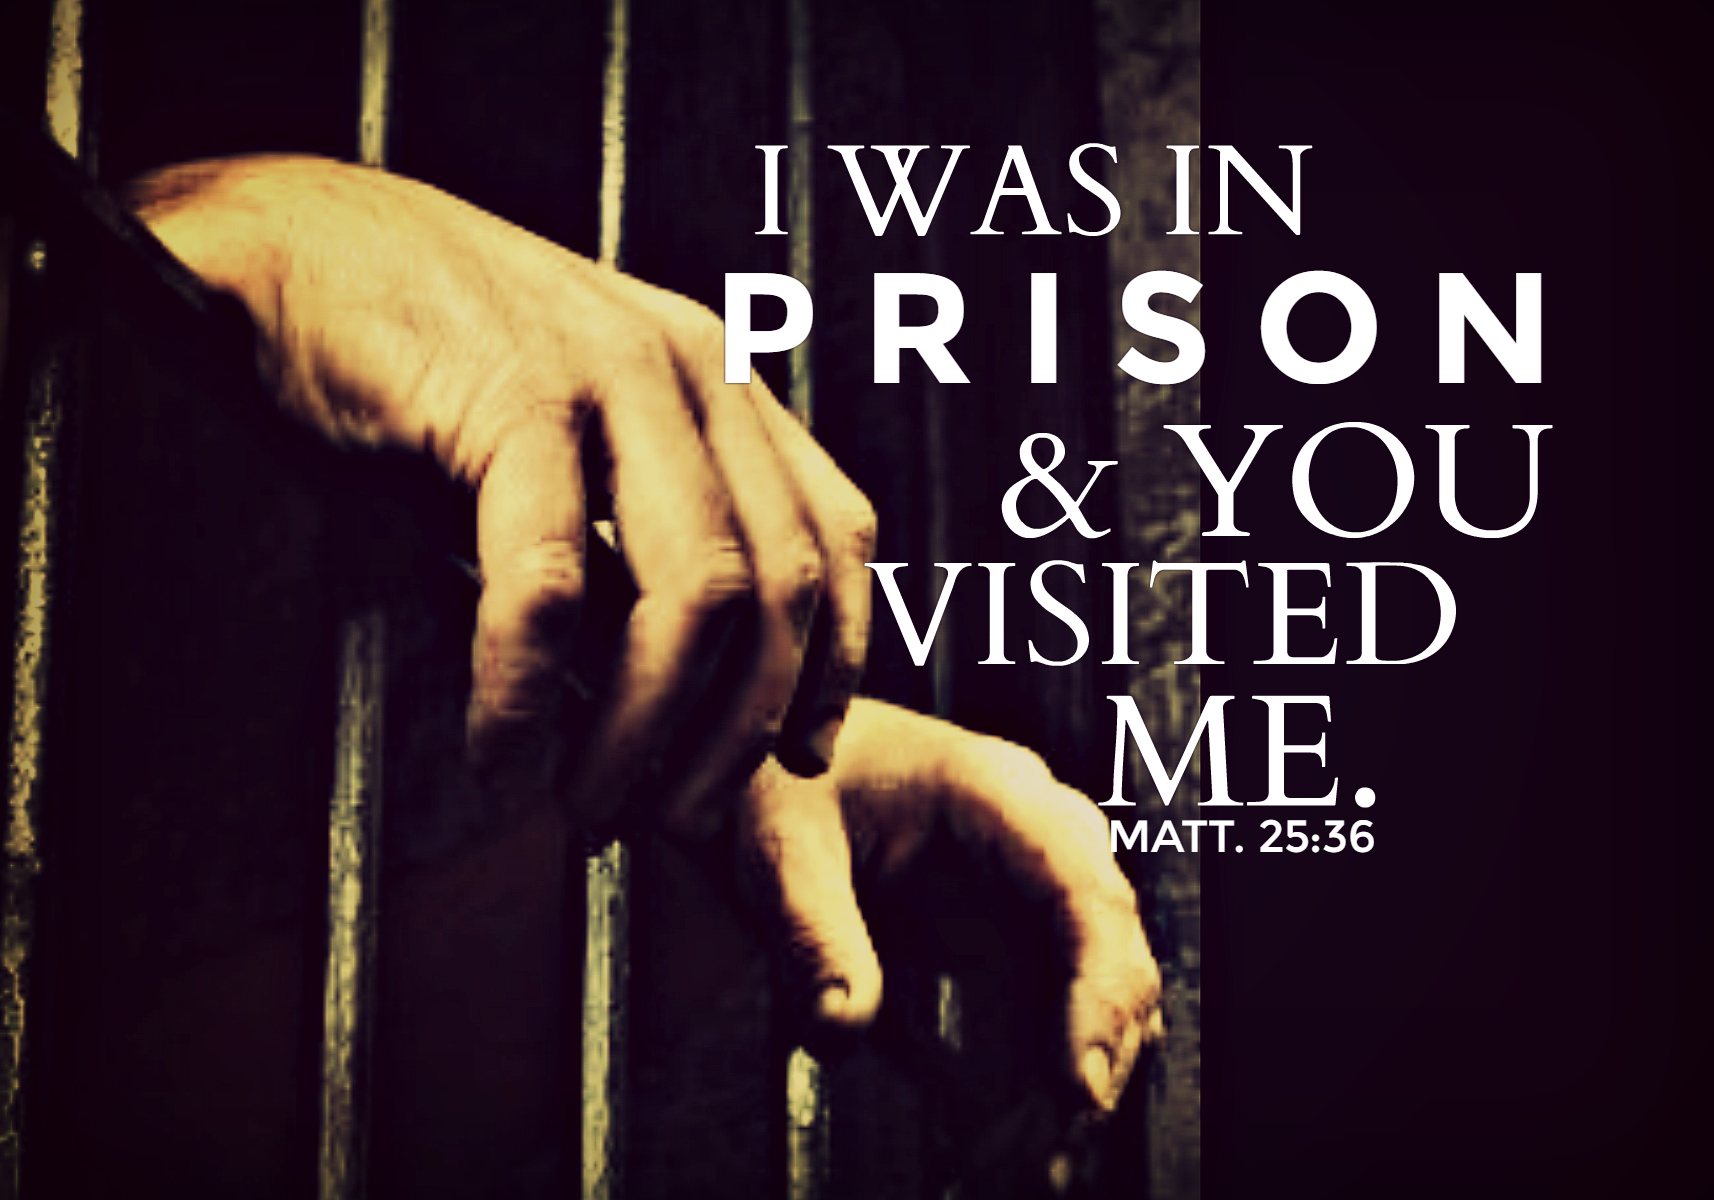 Help put God's Word in the hands of prisoners trying to change their lives